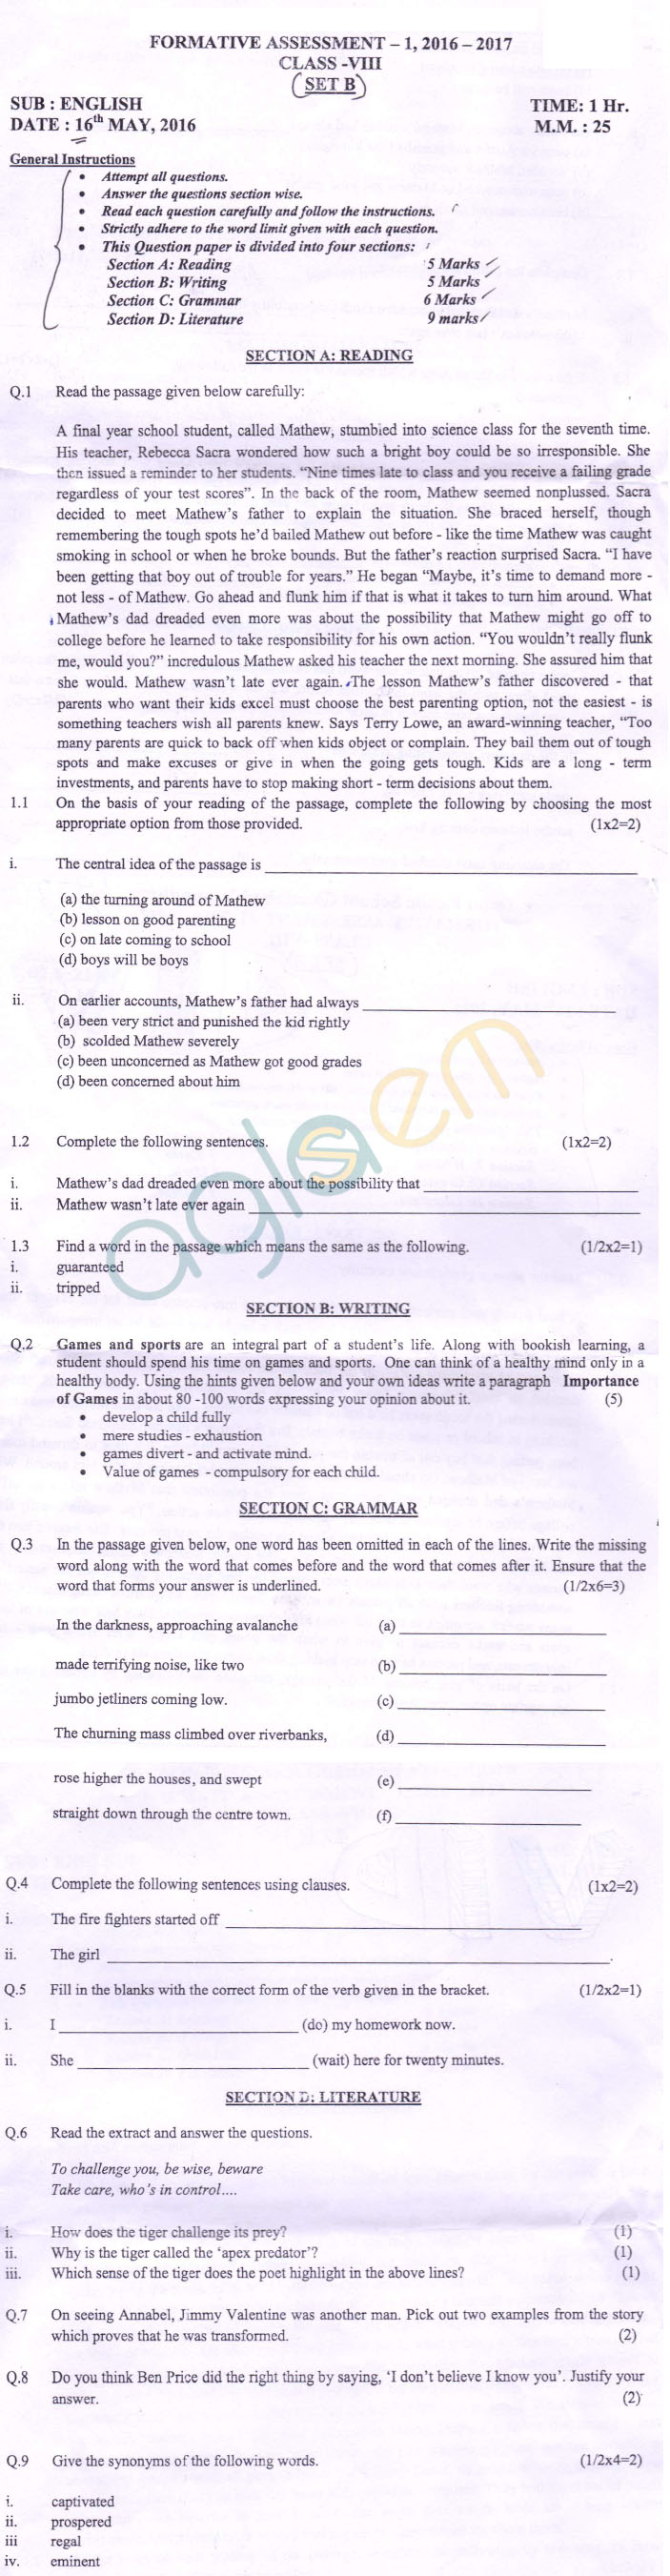 CBSE Class 8 Formative Assessment I Question Paper